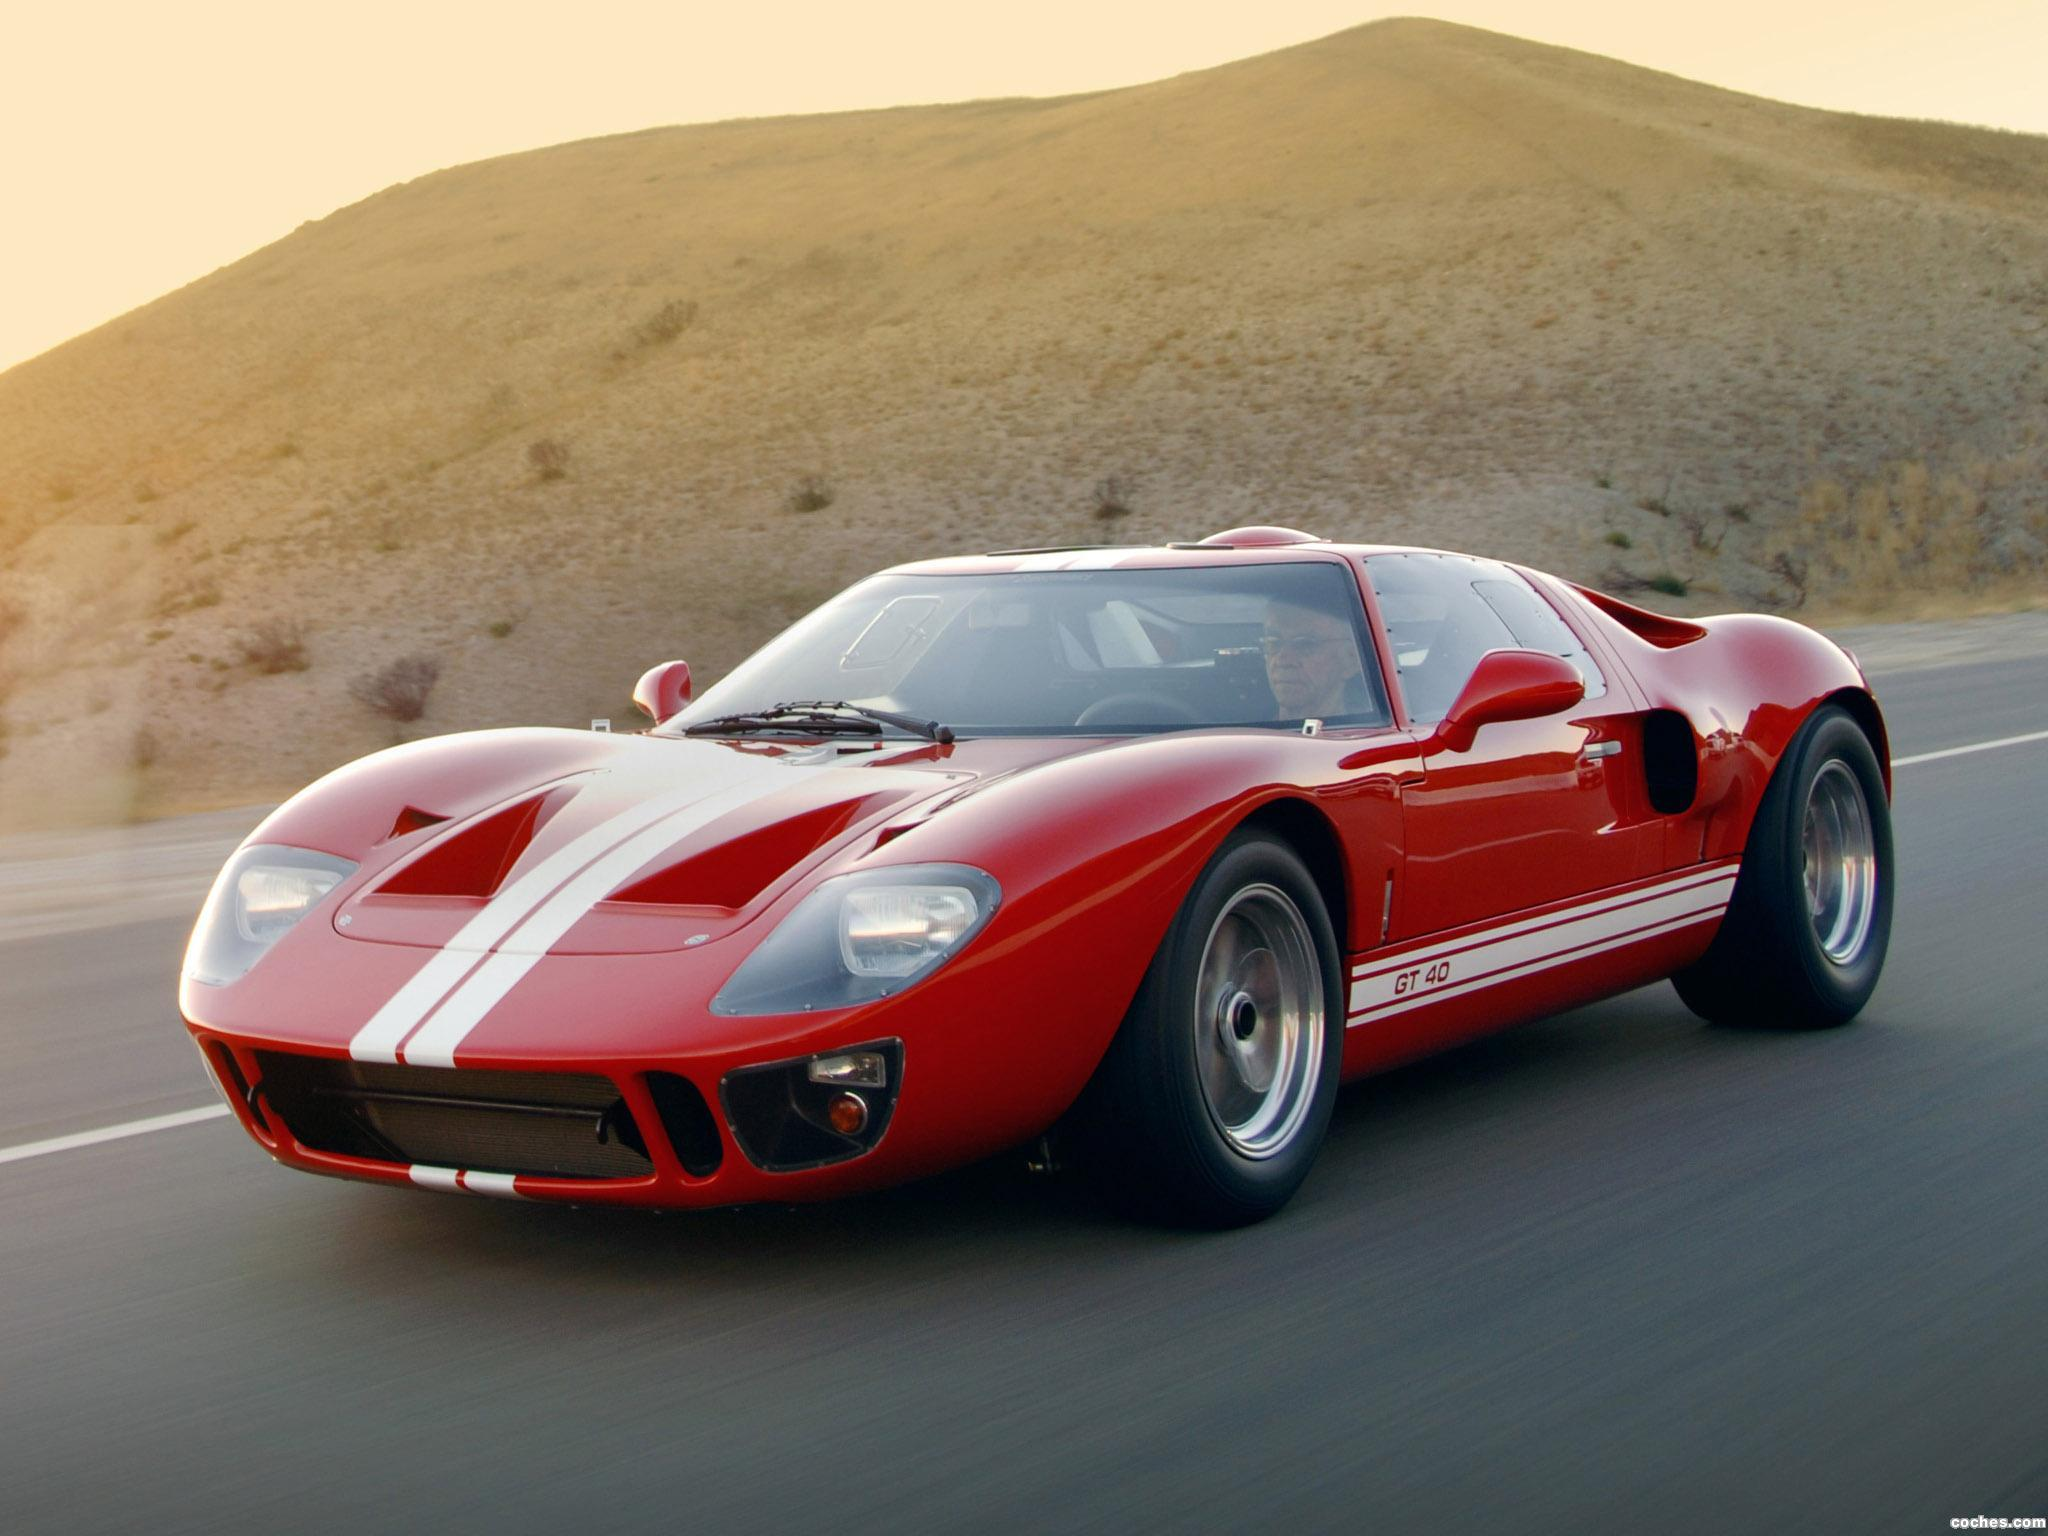 Fotos De Ford Superformance Gt40 2007 HD Wallpapers Download free images and photos [musssic.tk]